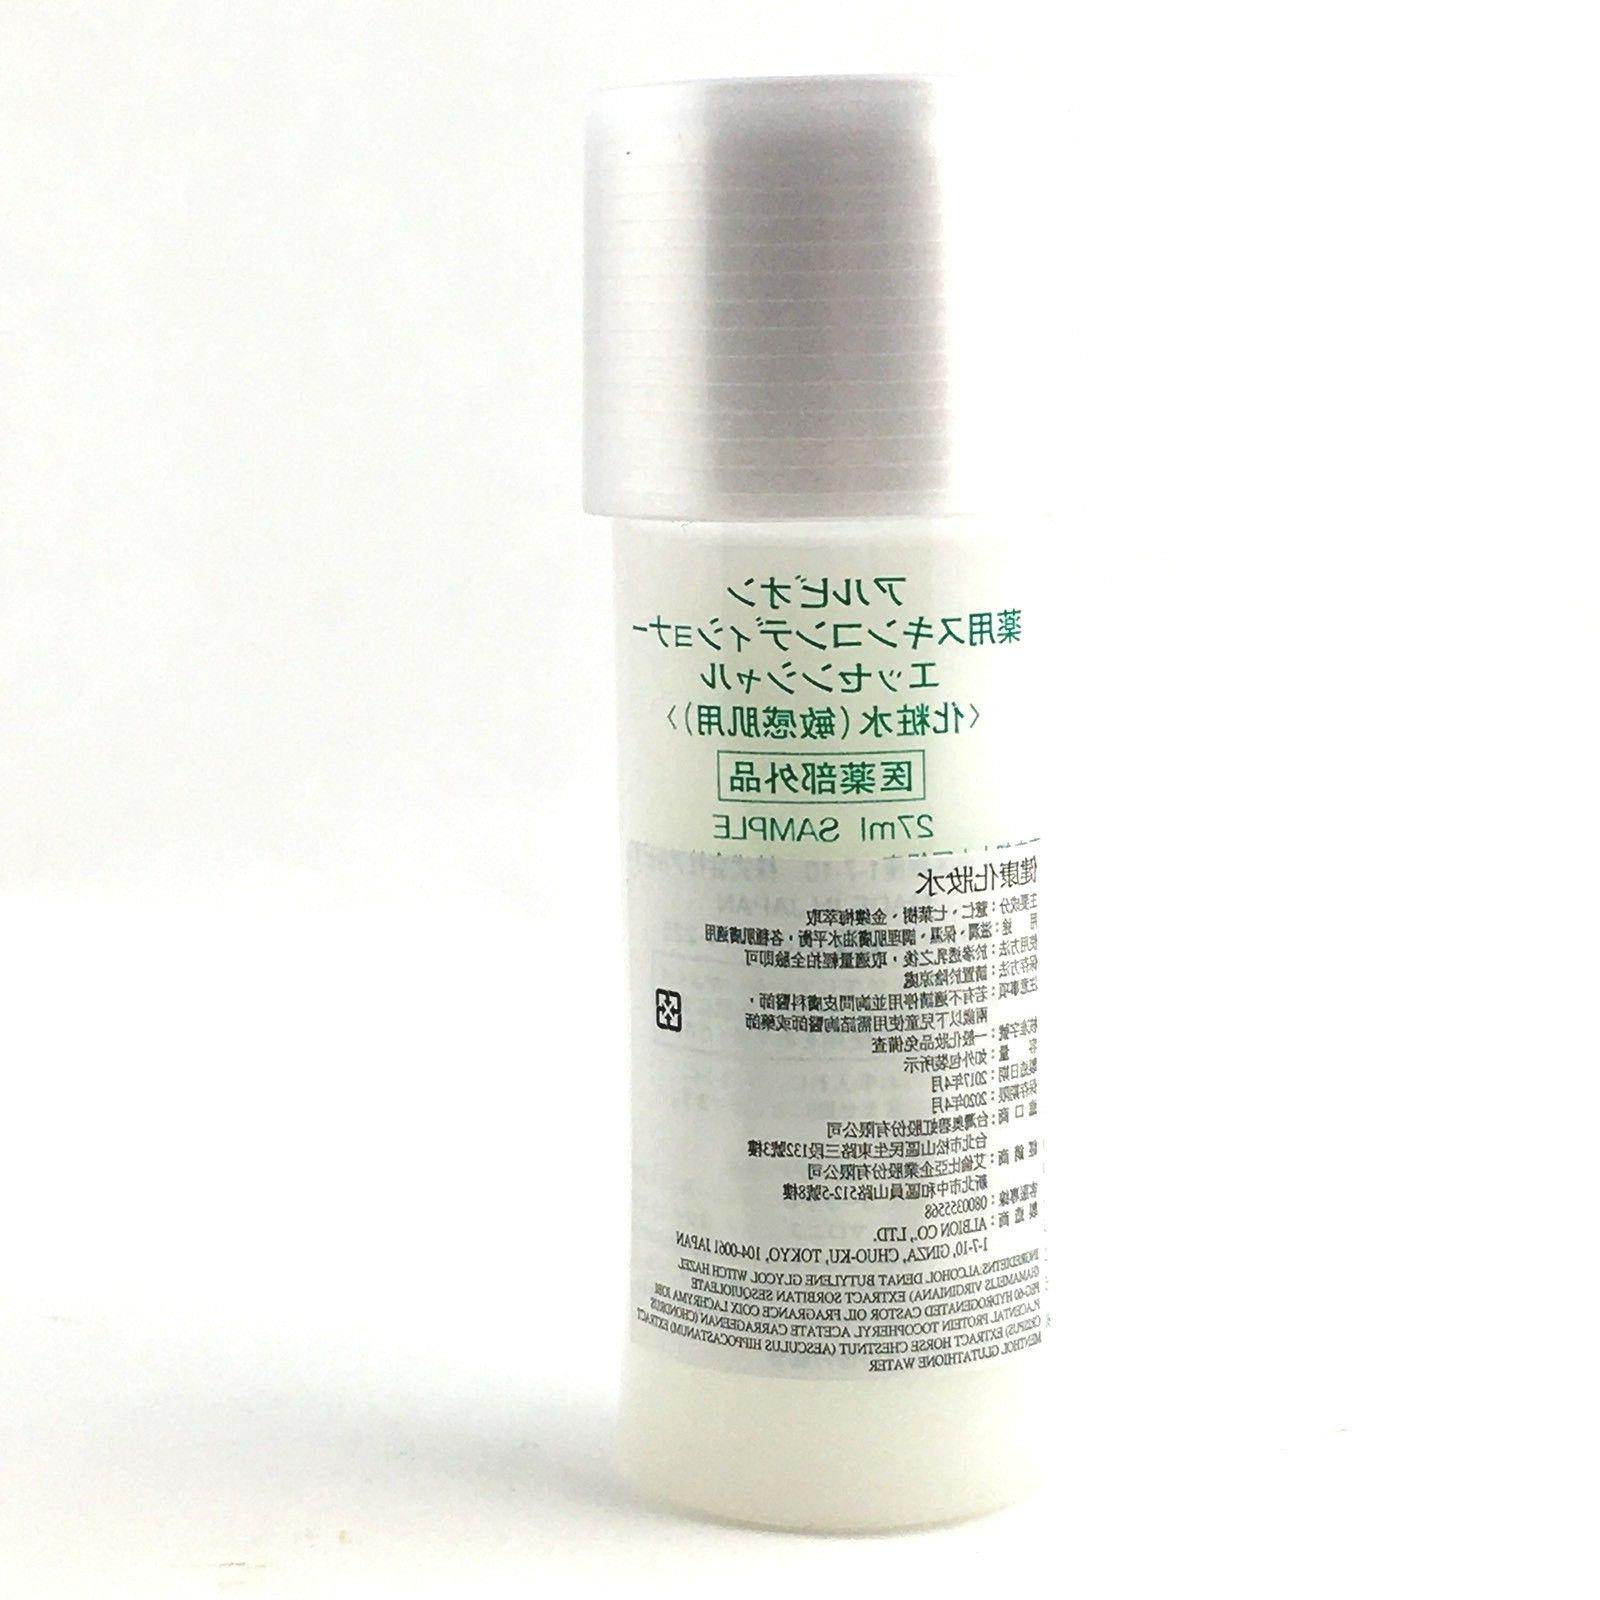 NEW Albion Skin Essential,lotion,sample,full size,27ml,330ml,Japan